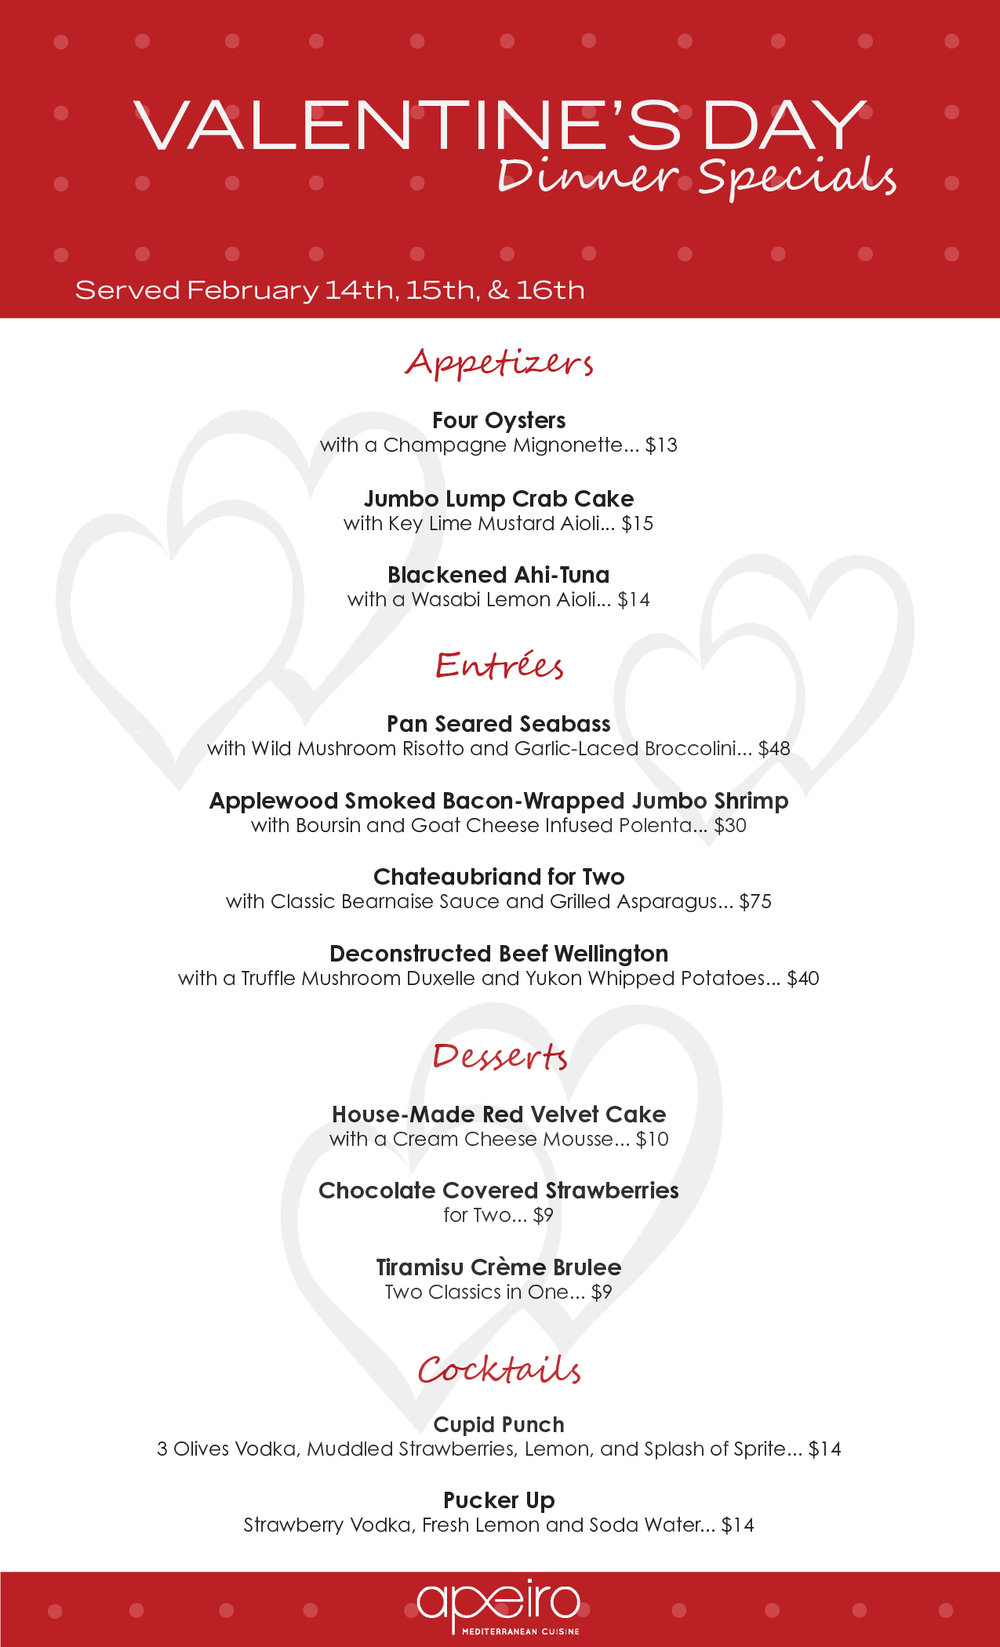 APEIRO MEDITERRANEAN CUISINE  - Valentine's Day Dinner Specials (Served February 14, 15 and 16)